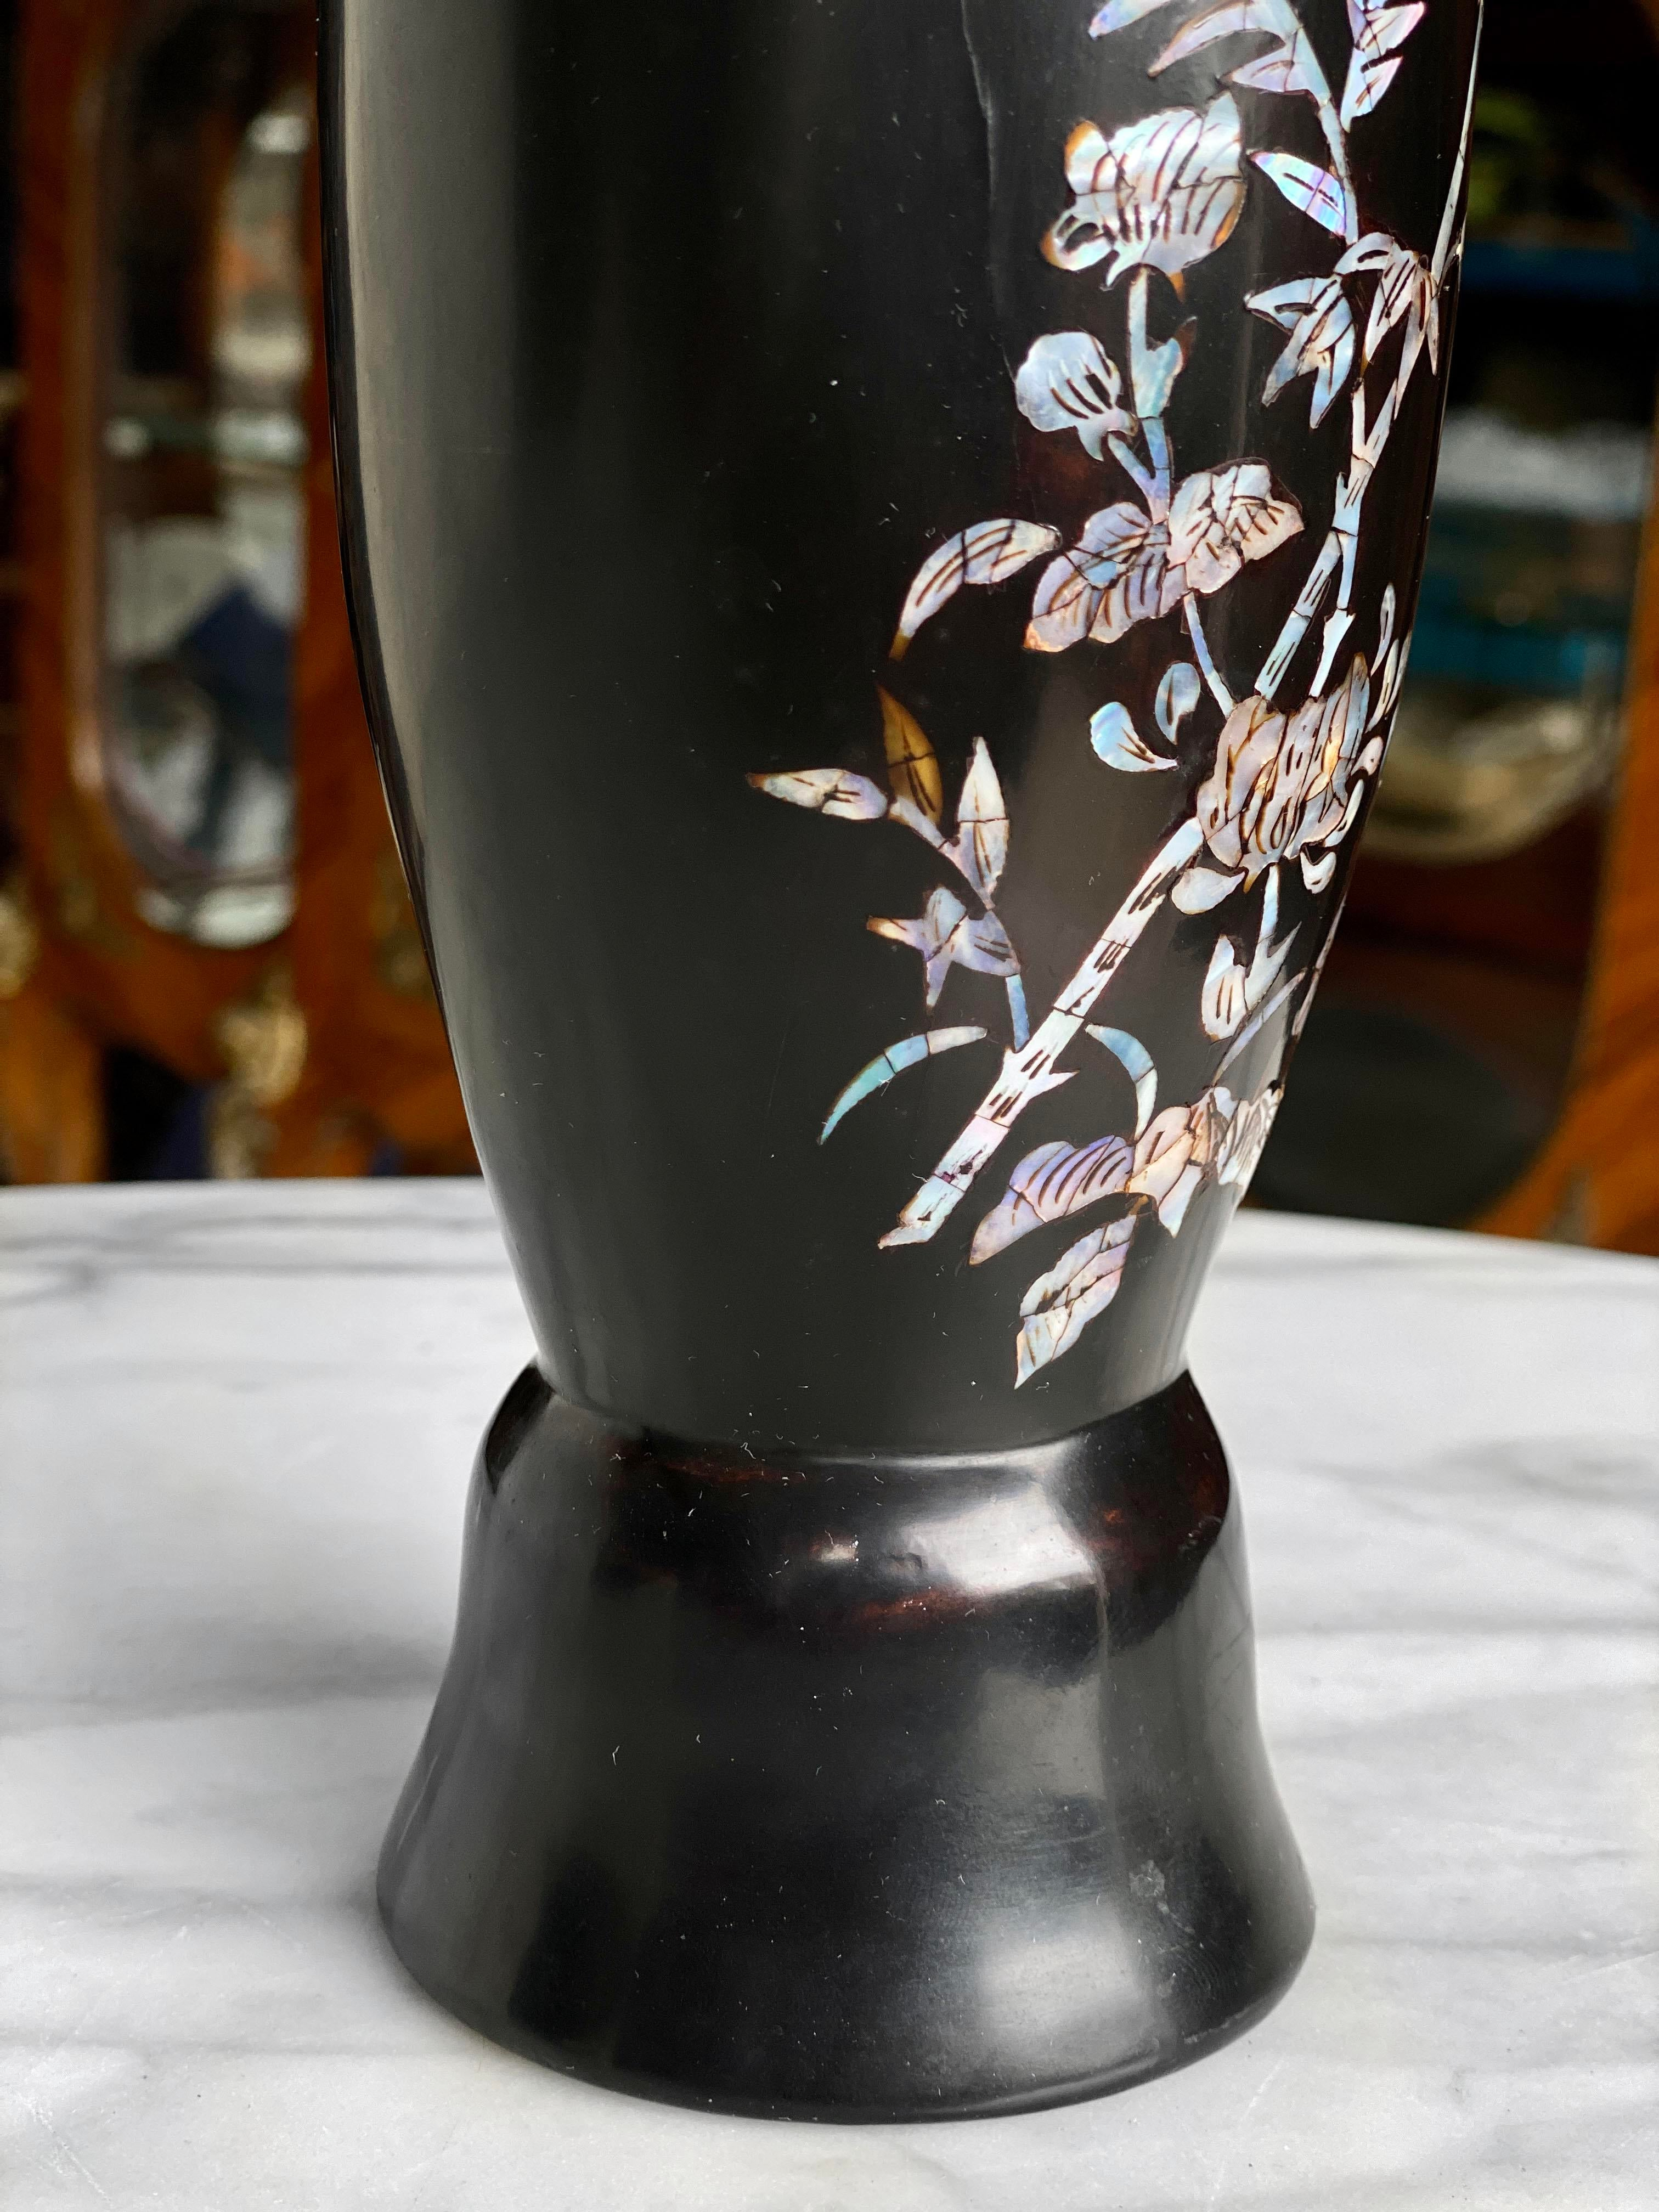 Vintage Lacquered Wood Vase with Mother of Pearl Inlay Vintage Hand Painted Wood Vase Vintage Wood Lacquered Vase Vintage Lacquer Wood Vase